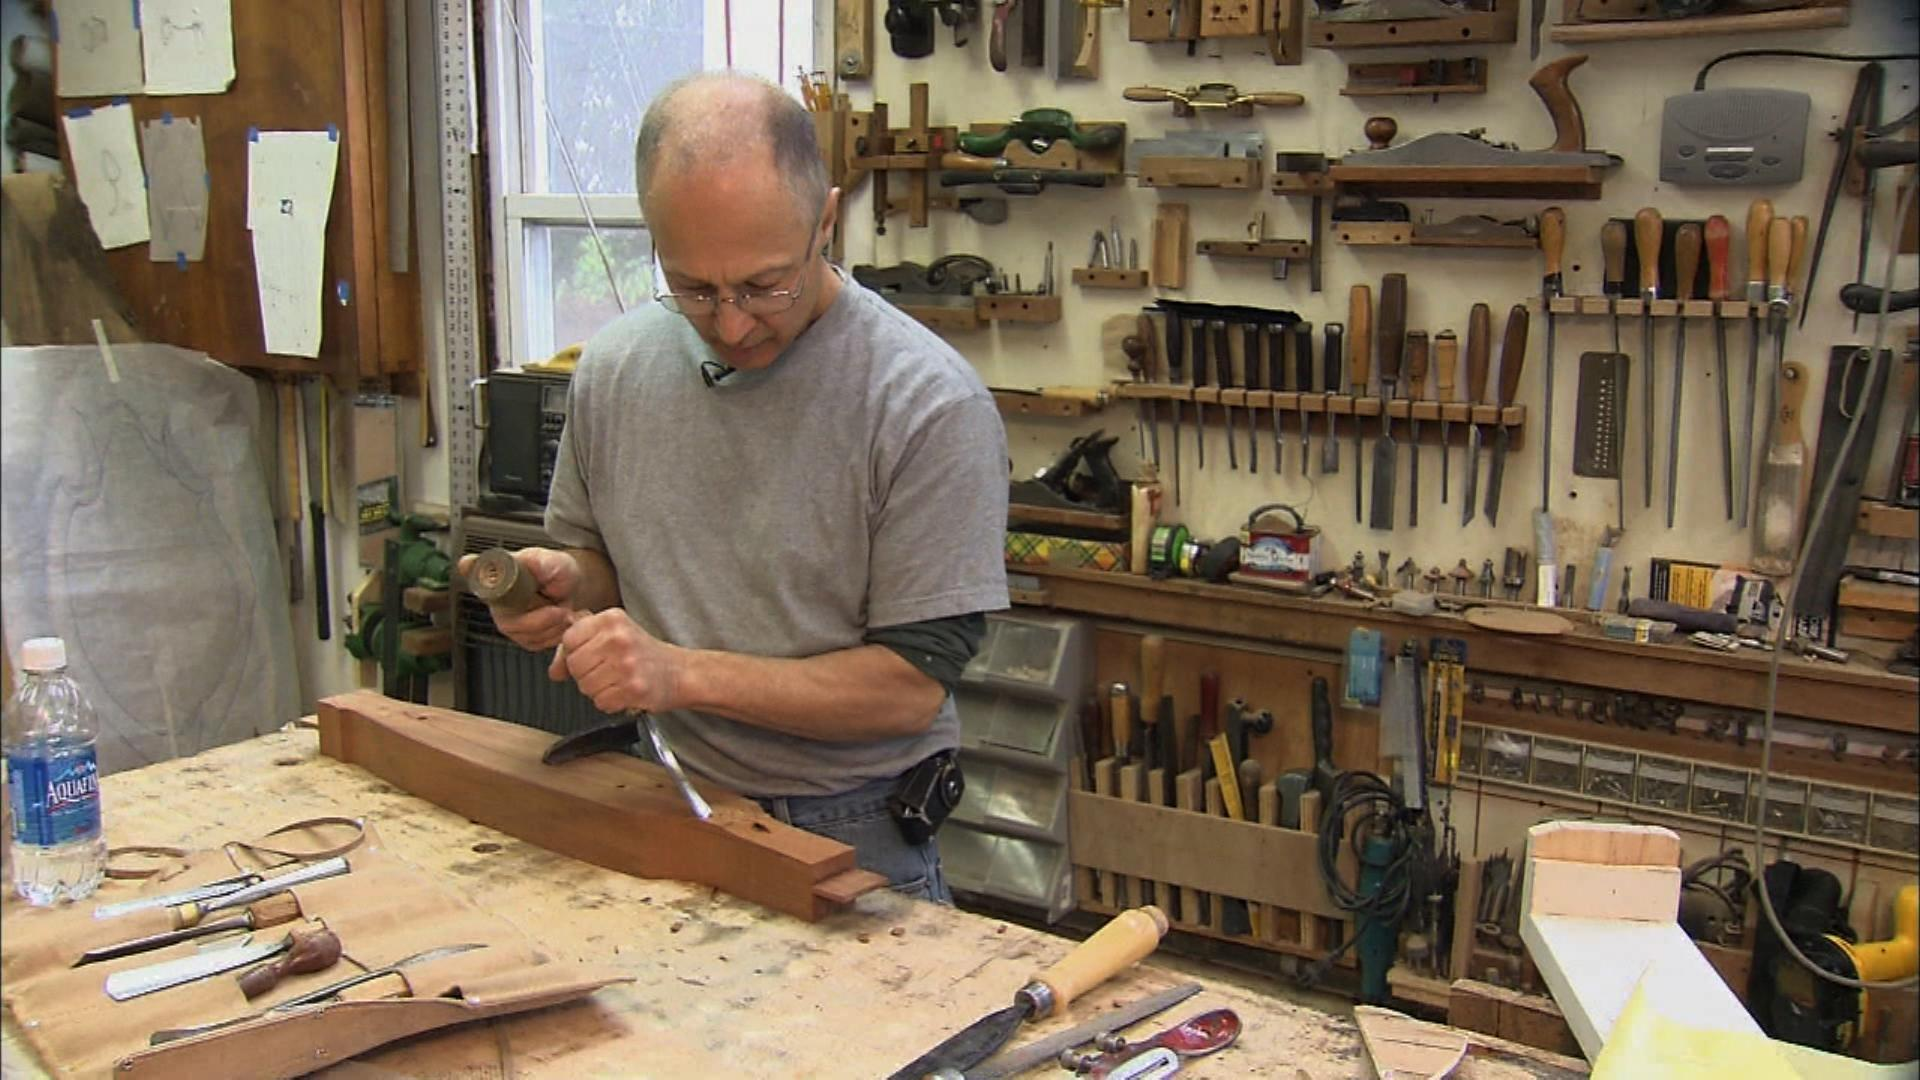 Glen Guarino, Woodworker | State of the Arts | Video | NJTV